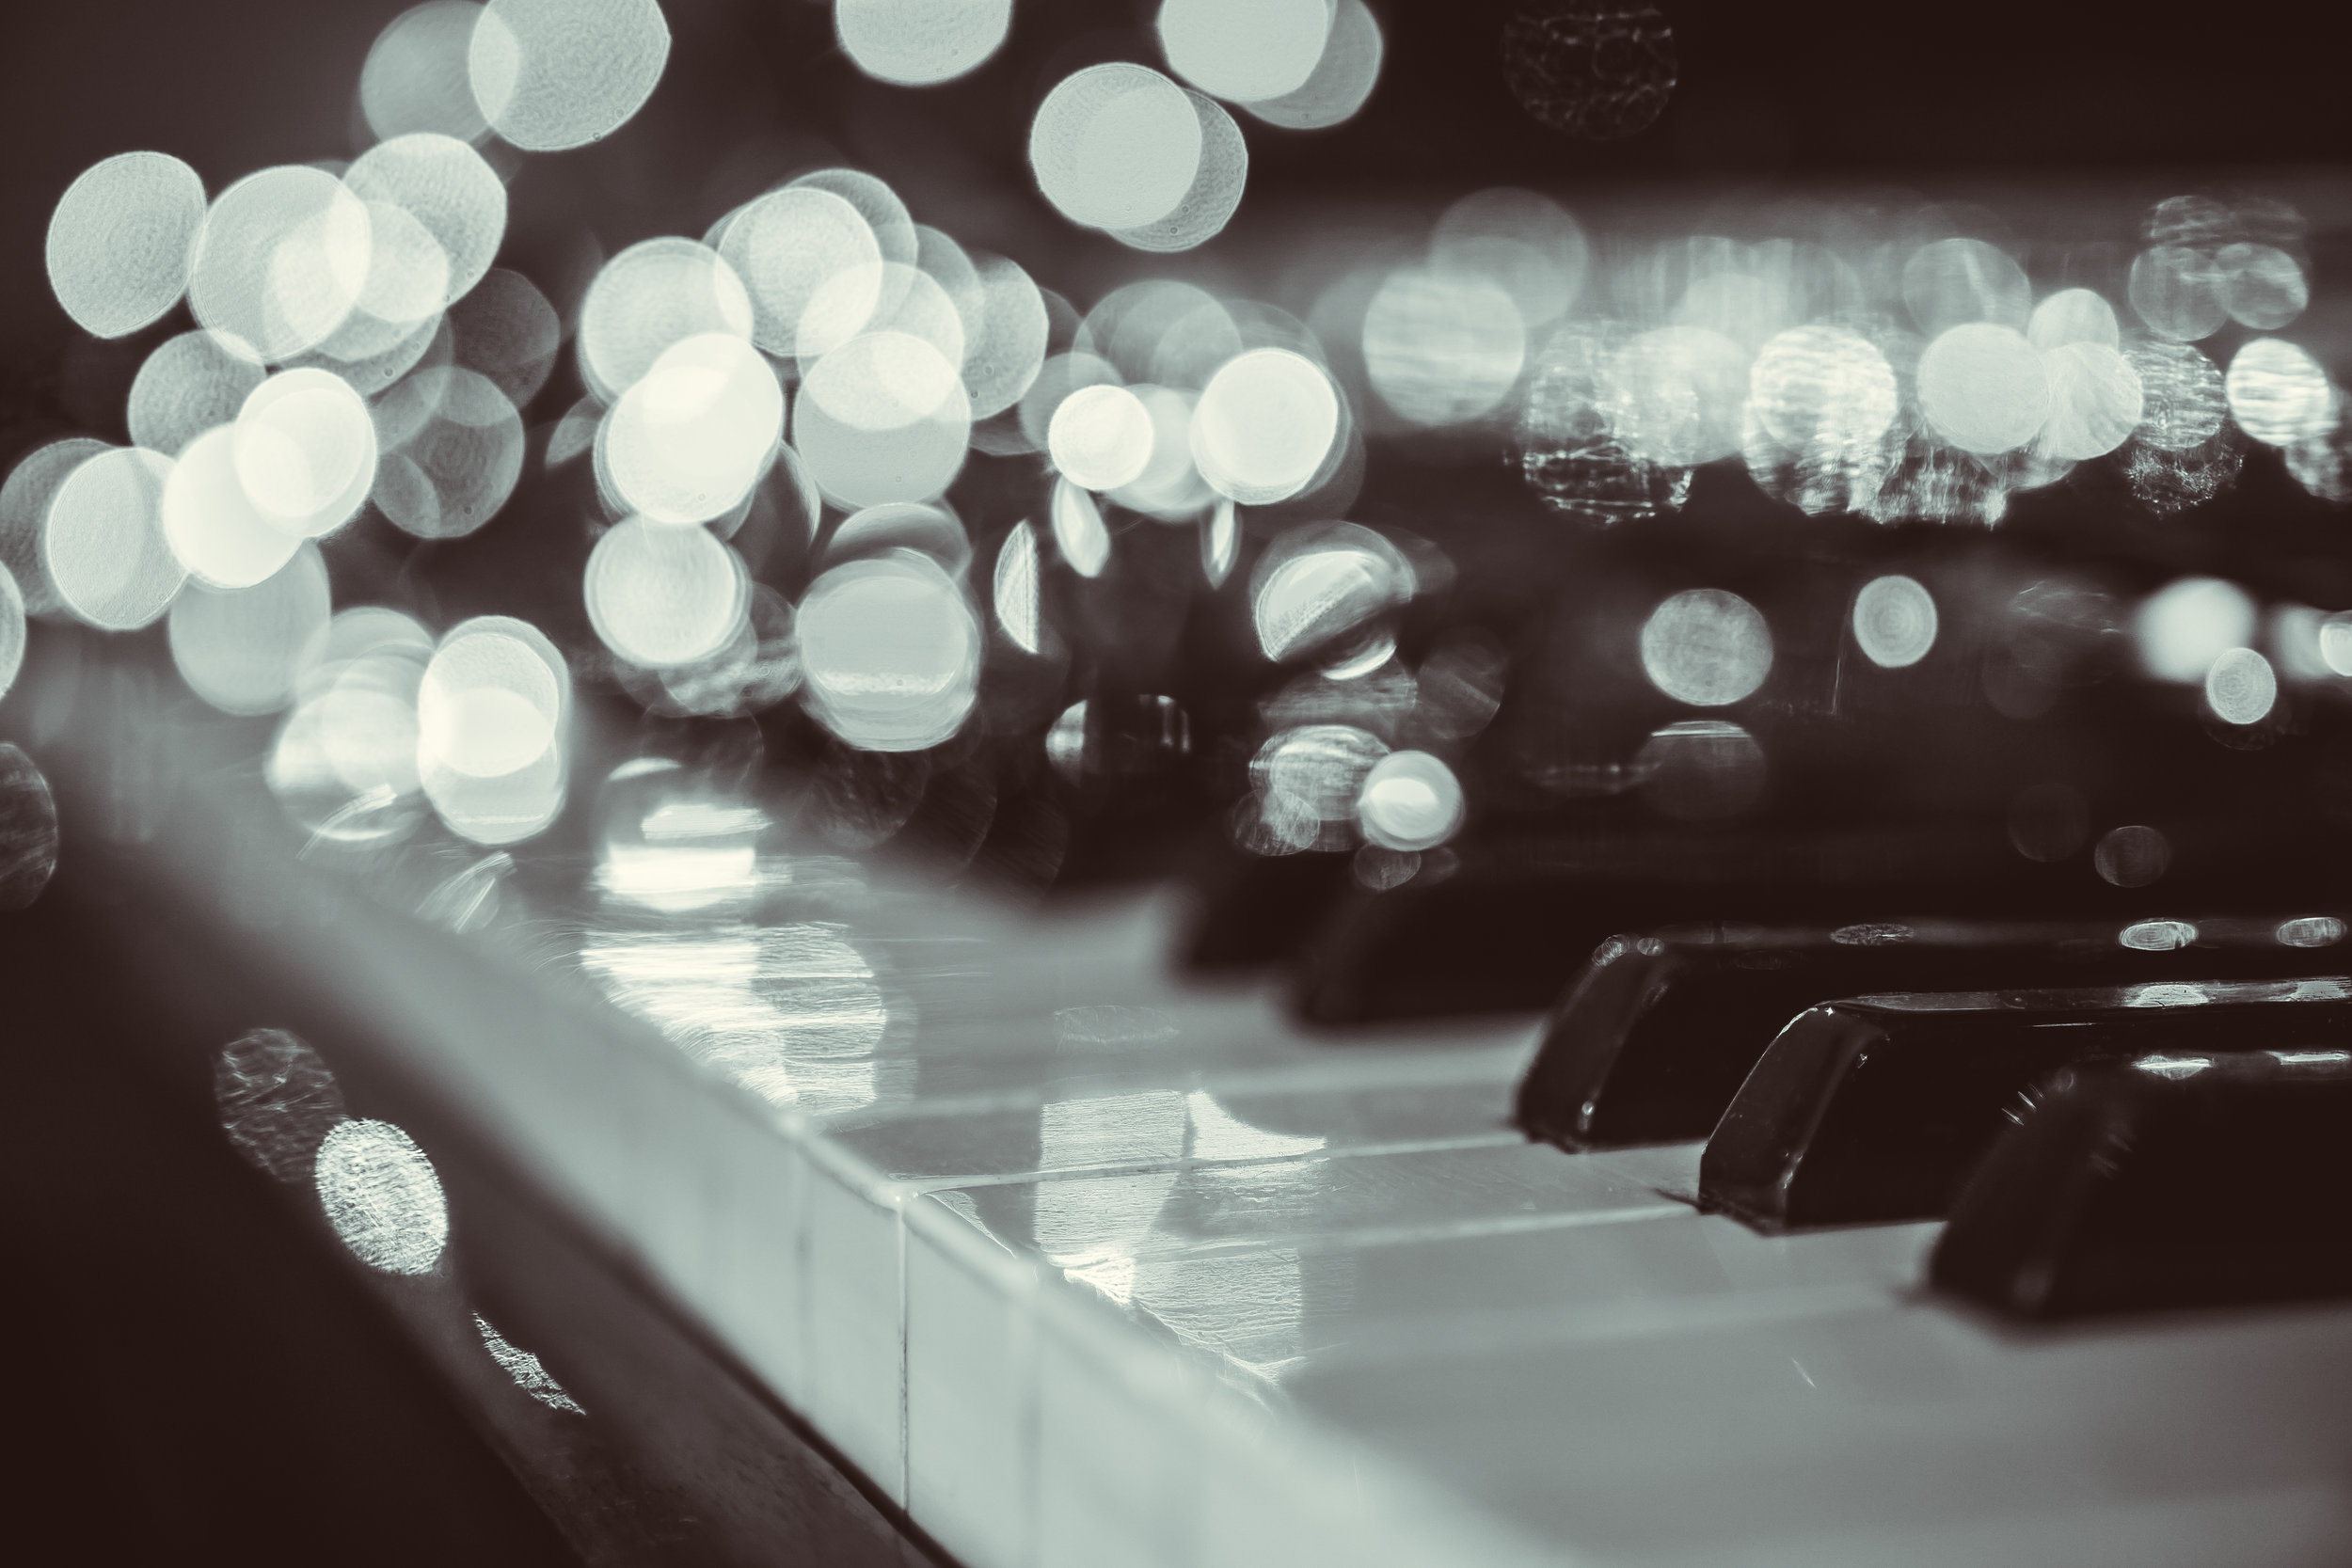 Piano and lights